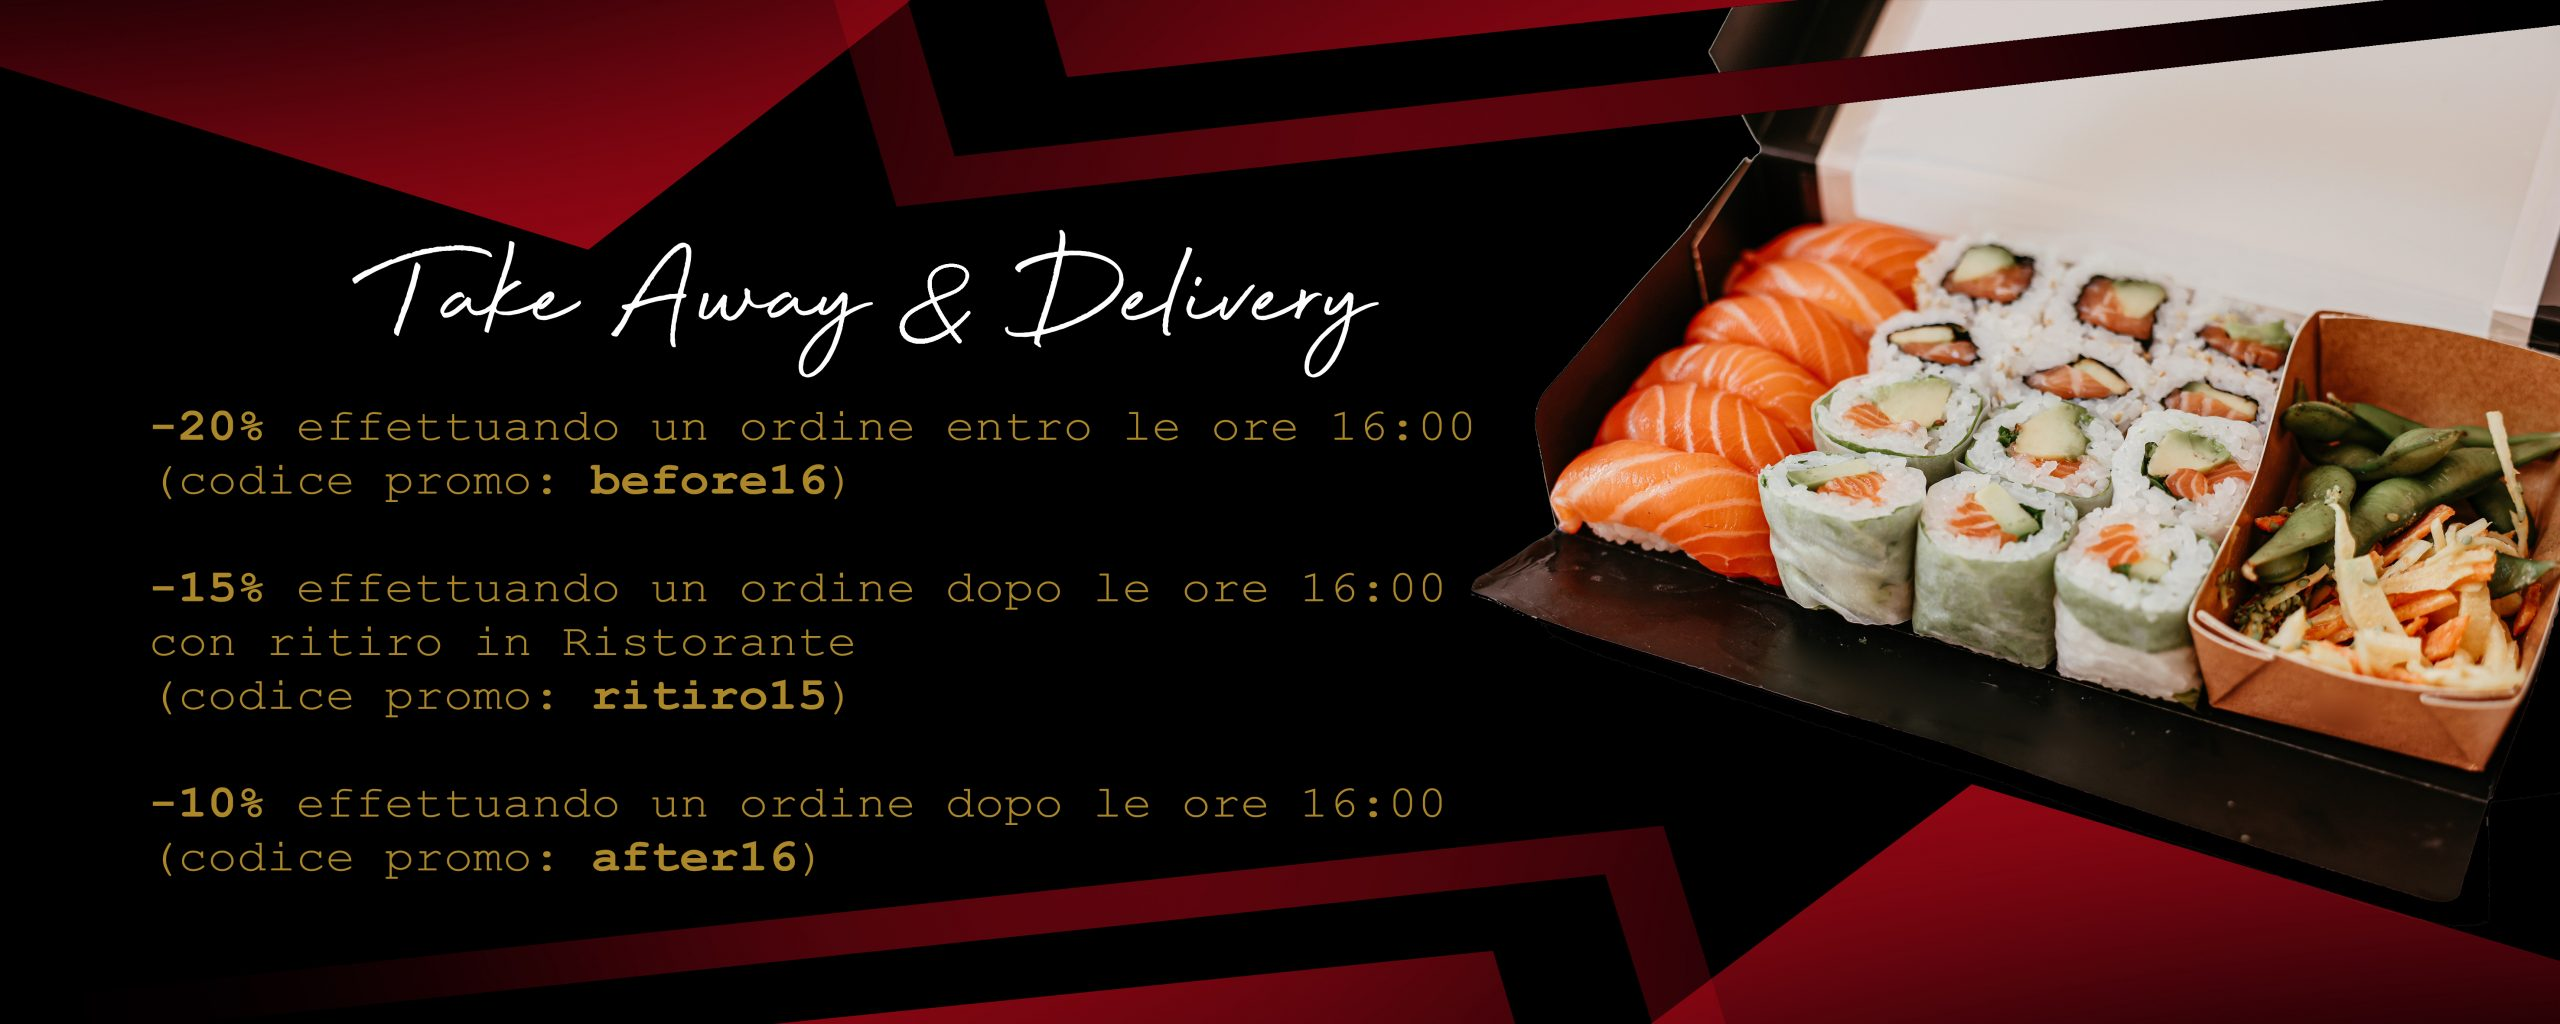 Sushi restaurant one. take away e delivery